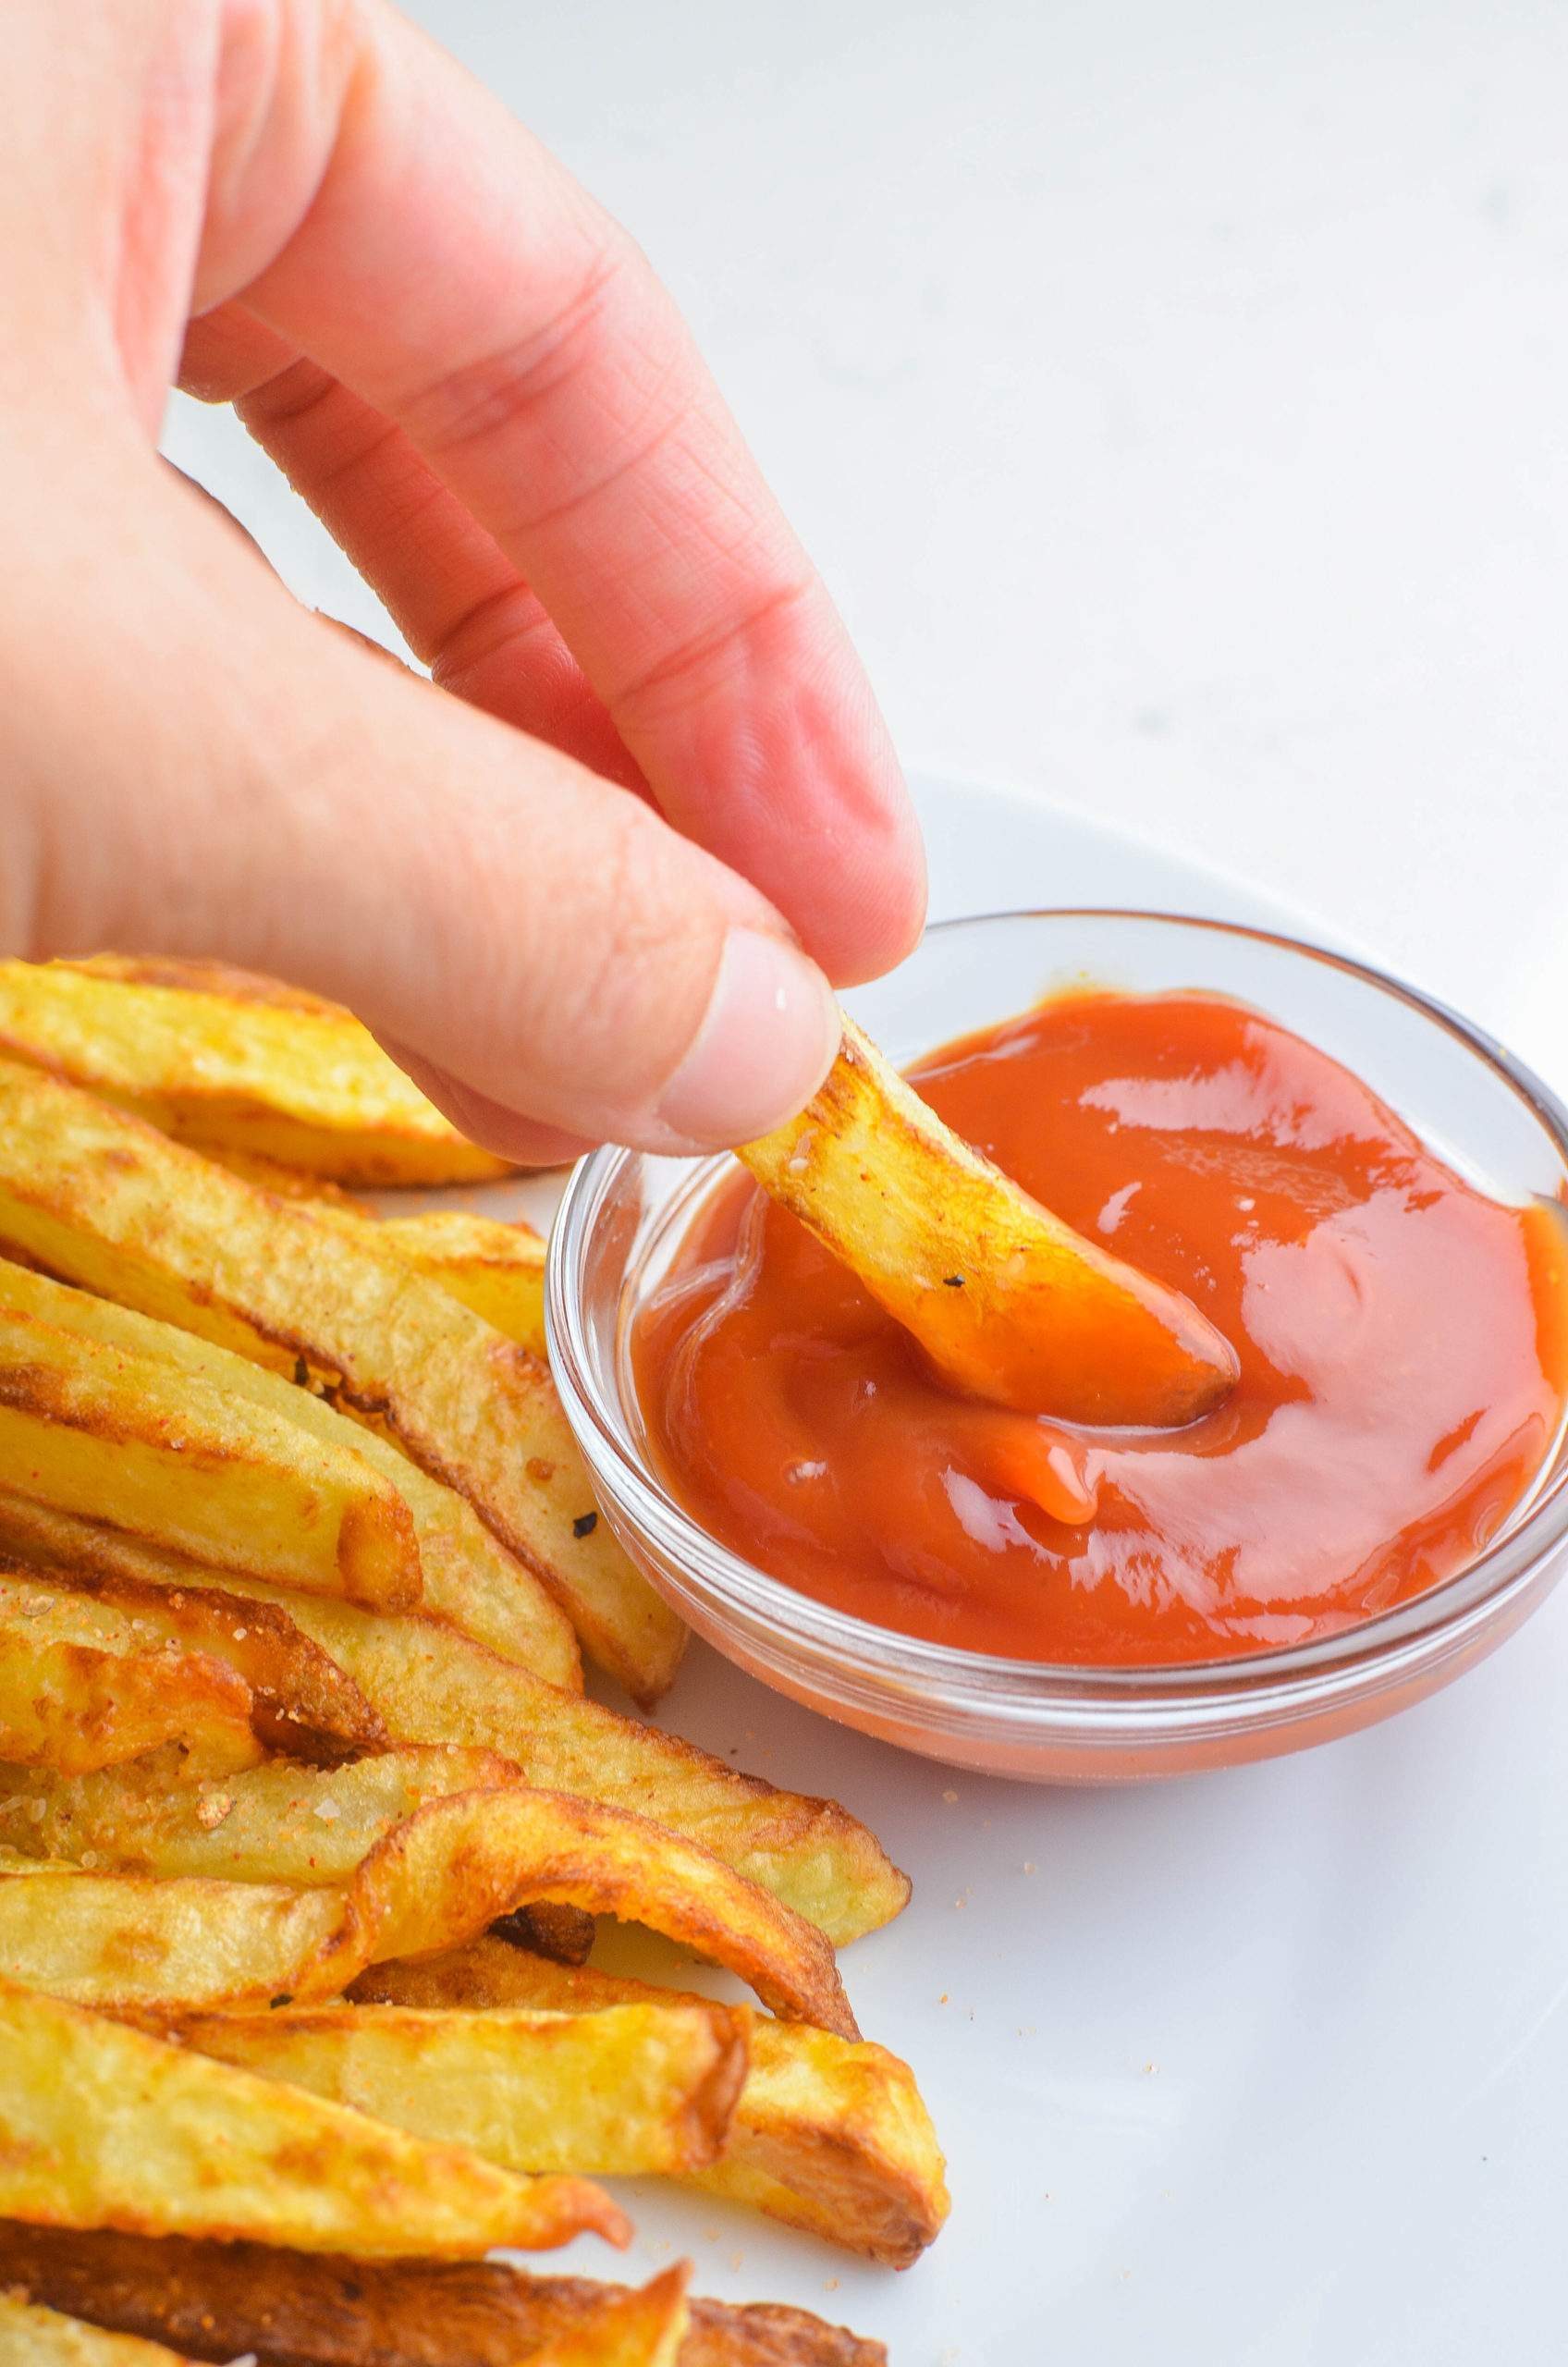 Dipping air fried french fries in ketchup